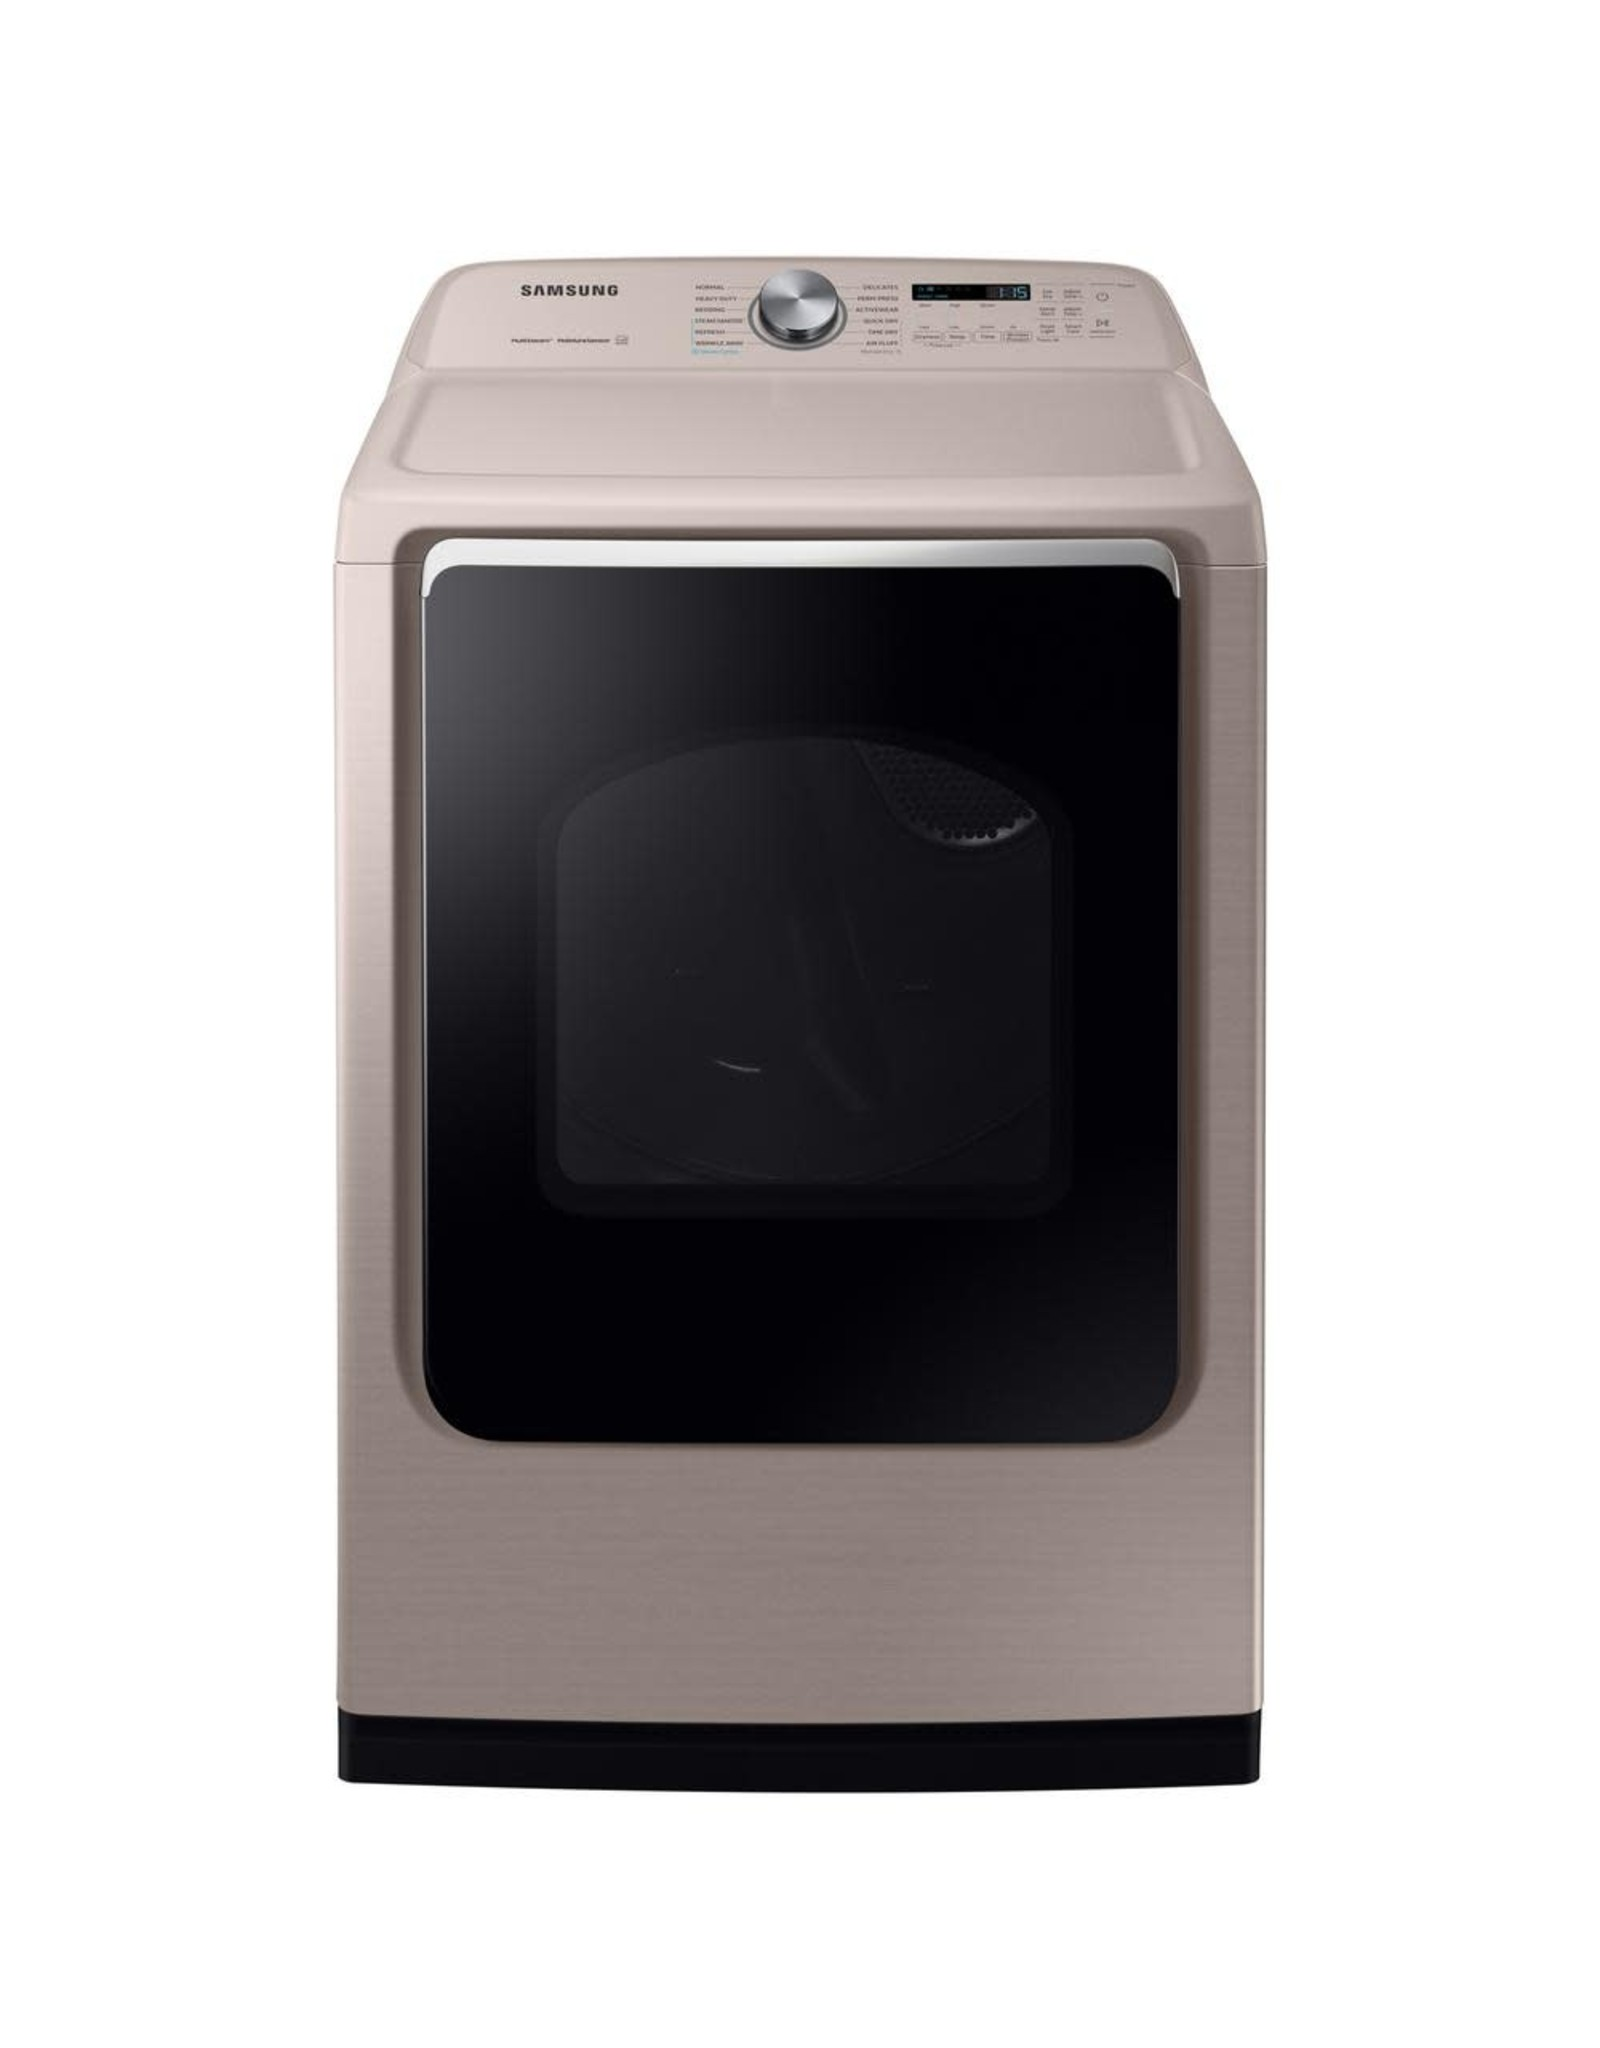 SAMSUNG DVE54R7600C 7.4 cu. ft. Champagne Electric Dryer with Steam Sanitize+, ENERGY STAR